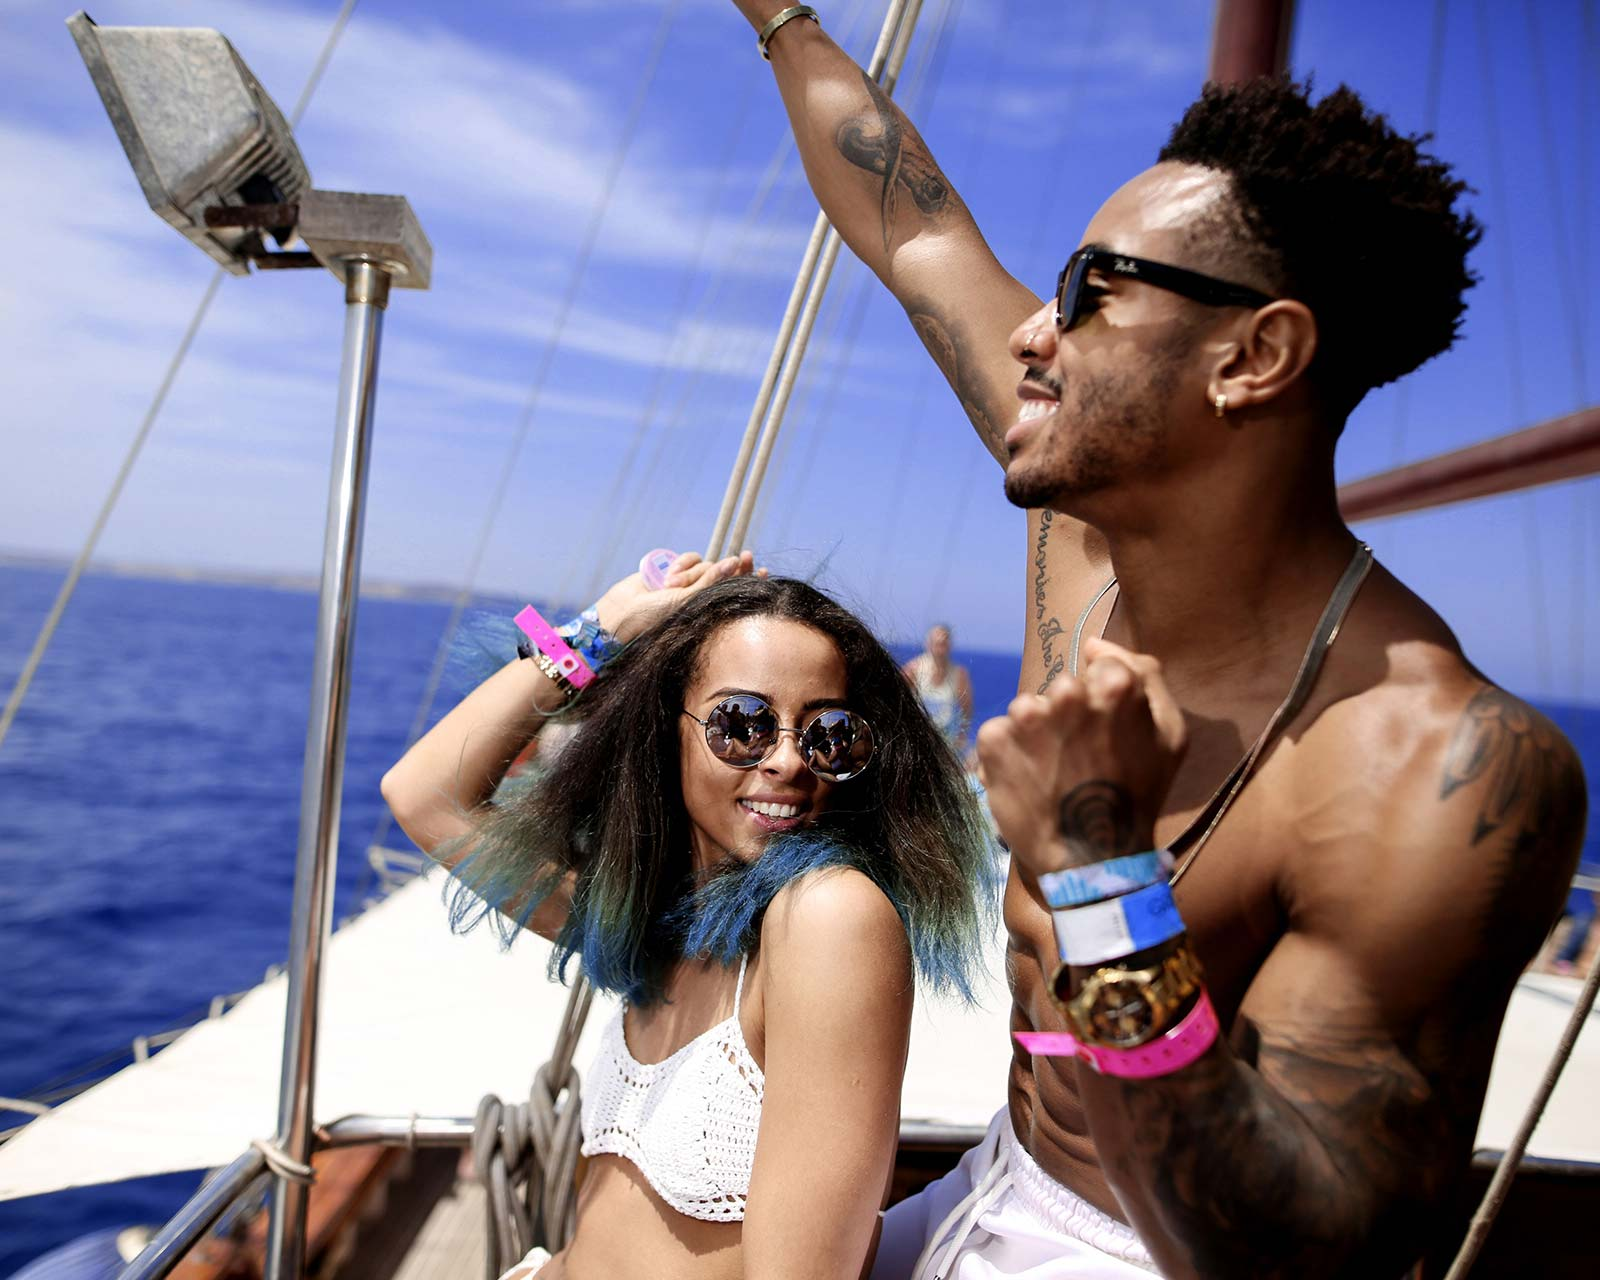 couple on a boat at a boat party off of the maltese coast experiencing disturbing malta festival